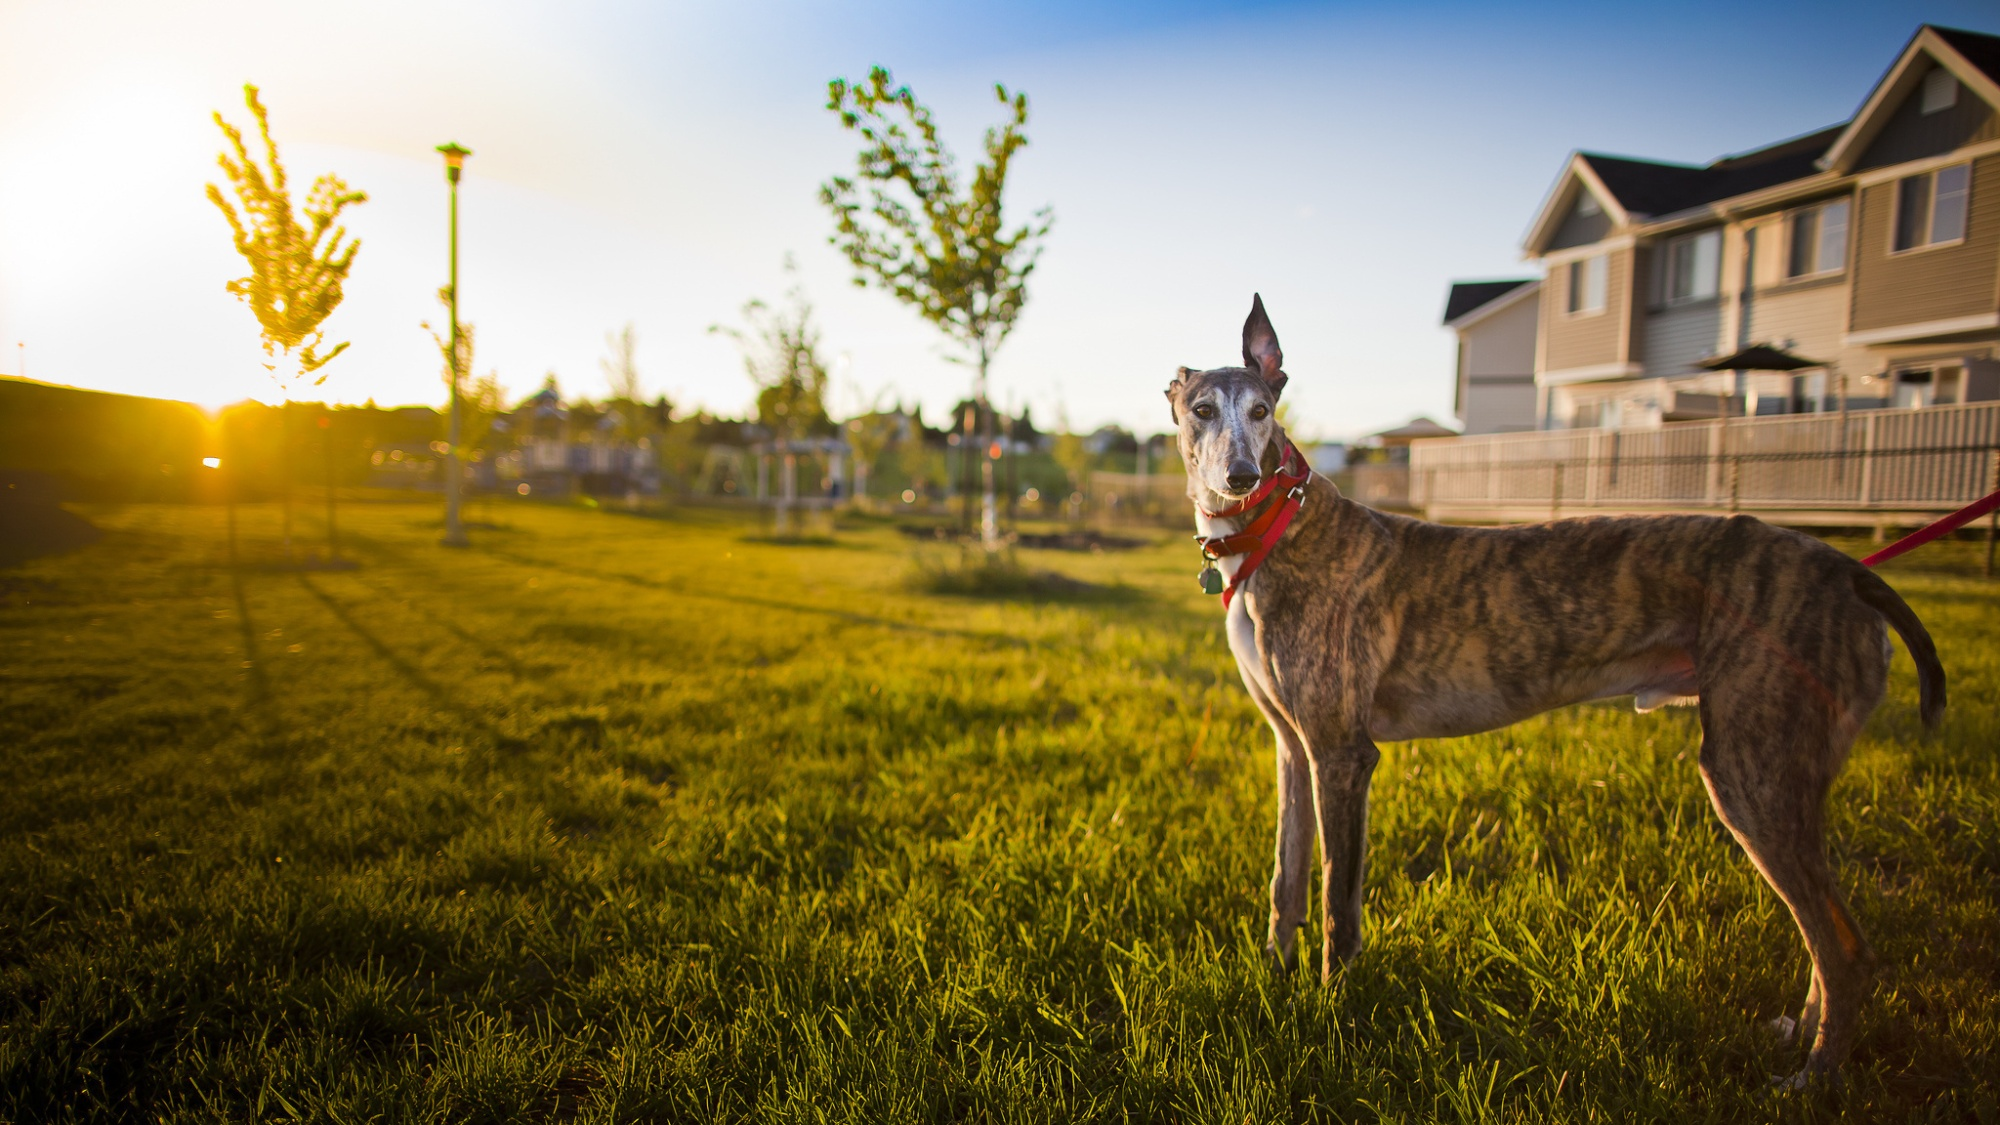 Greyhound Canis Lupus Familiaris Symbolic Meaning Whispers